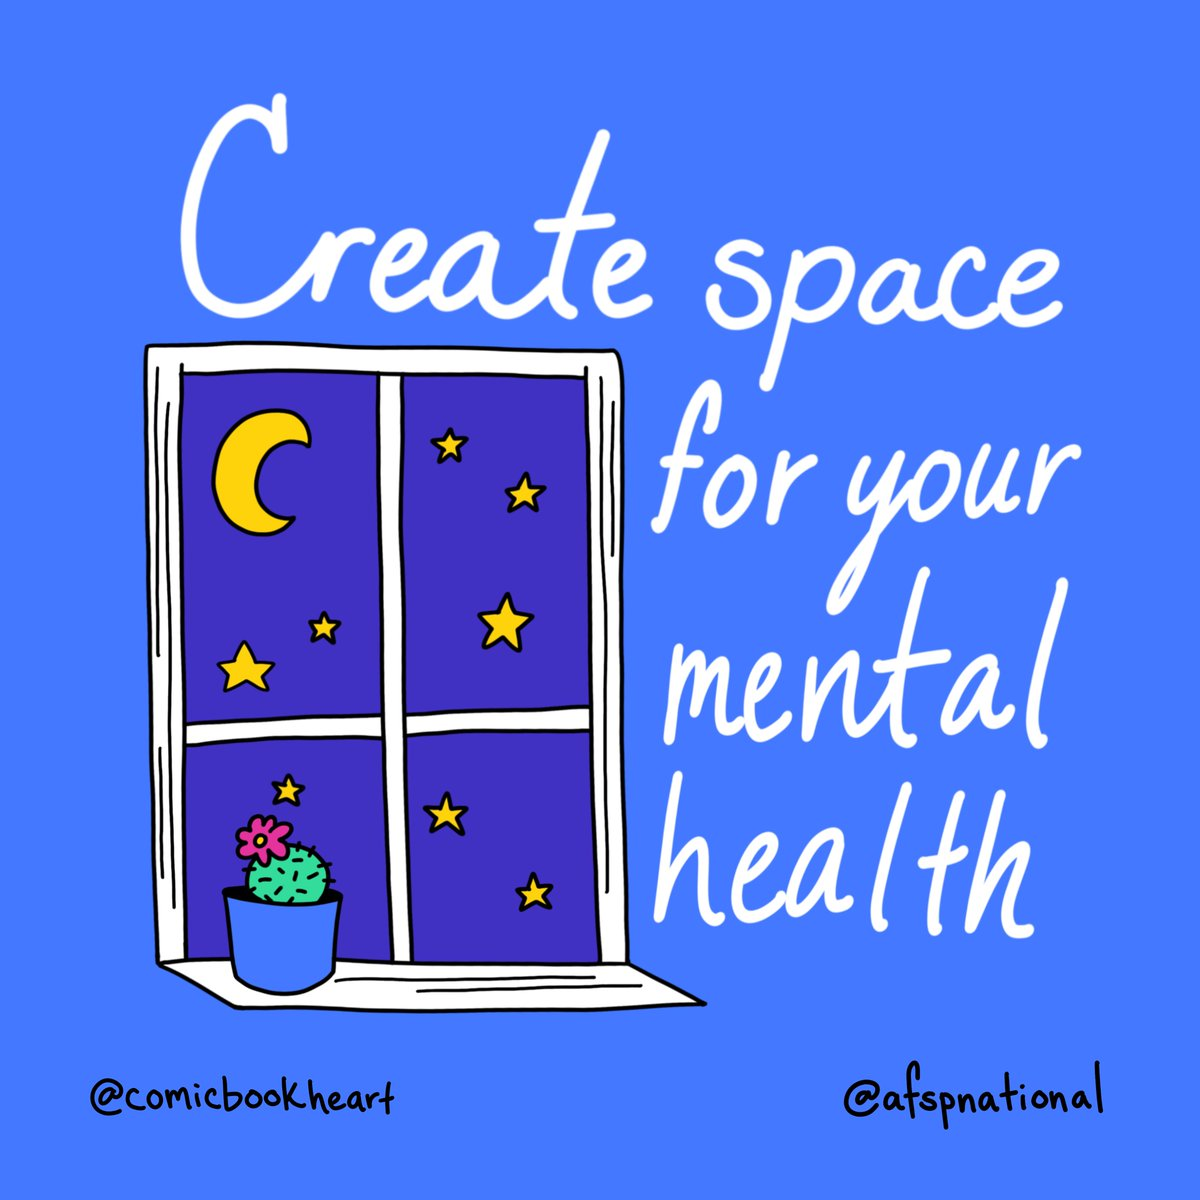 Its okay to make space for yourself and your mental health! 🌕 🌟 🎨 : @comicbookheart